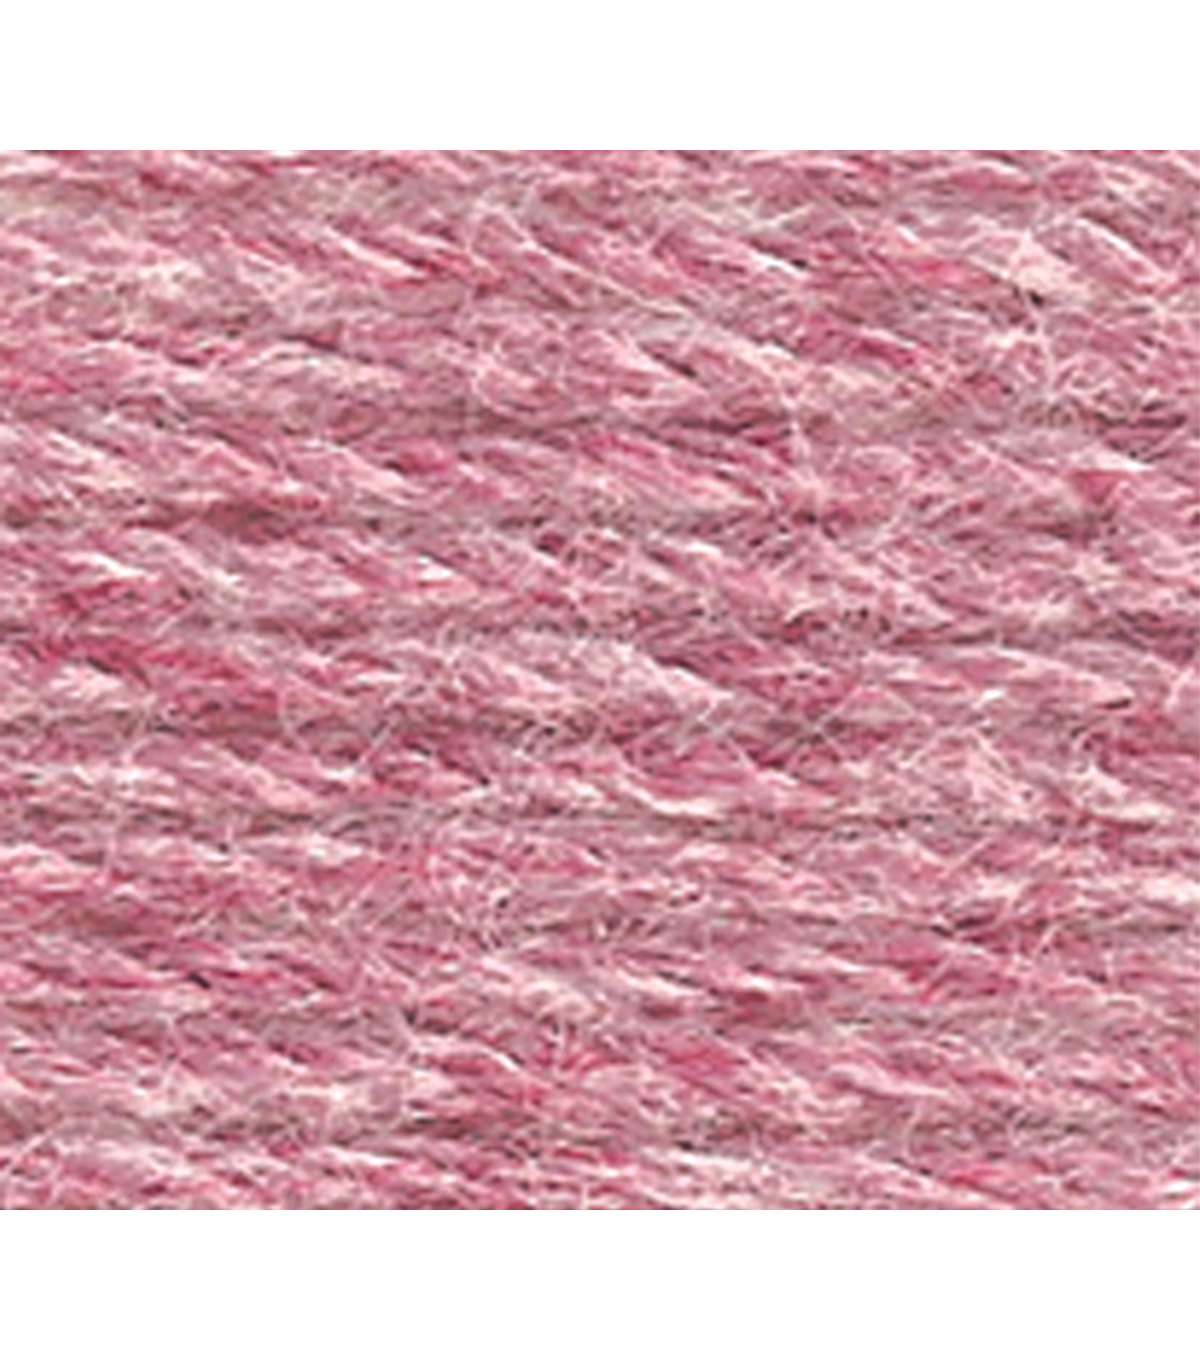 Lion Brand Wool-Ease Yarn, Rose Heather